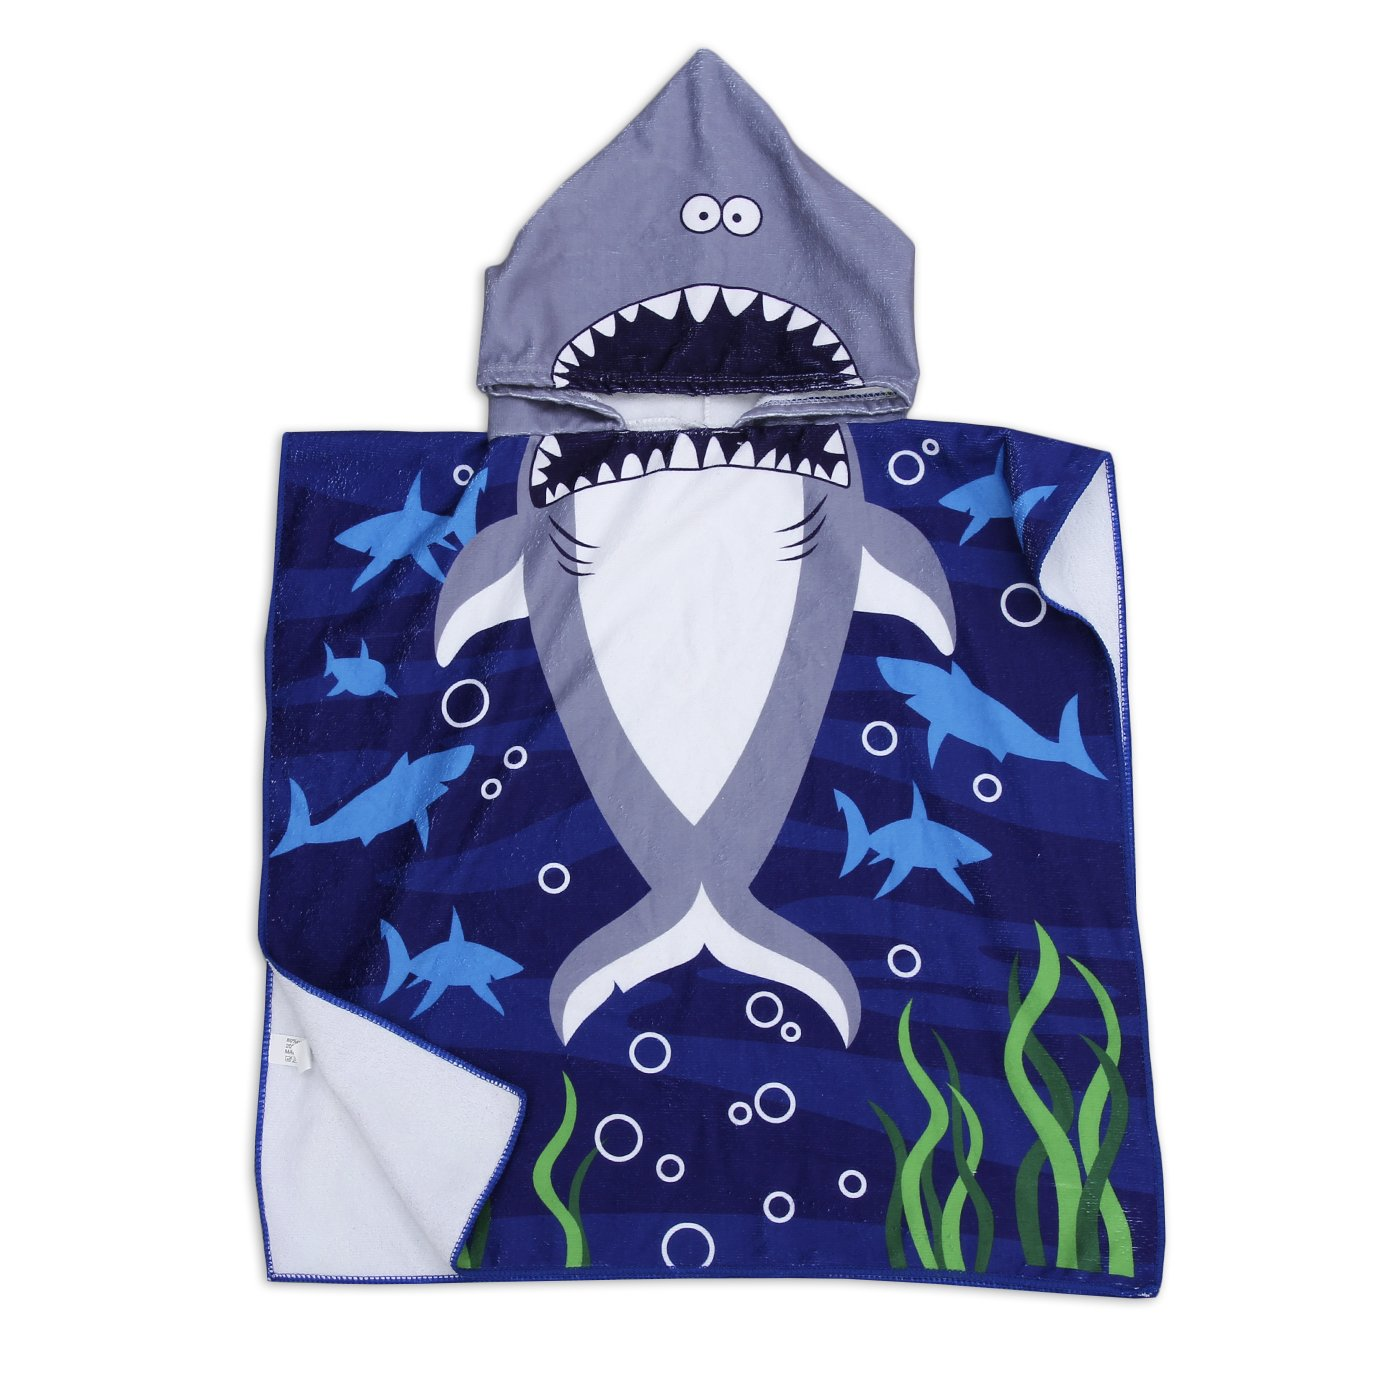 Polly House Children Hooded Beach Towel, Shower Bath Robes, Swim coverup, Water Activities Towel for Boy/Girls, Soft and Strong Absorbent (12 Shark Sea)